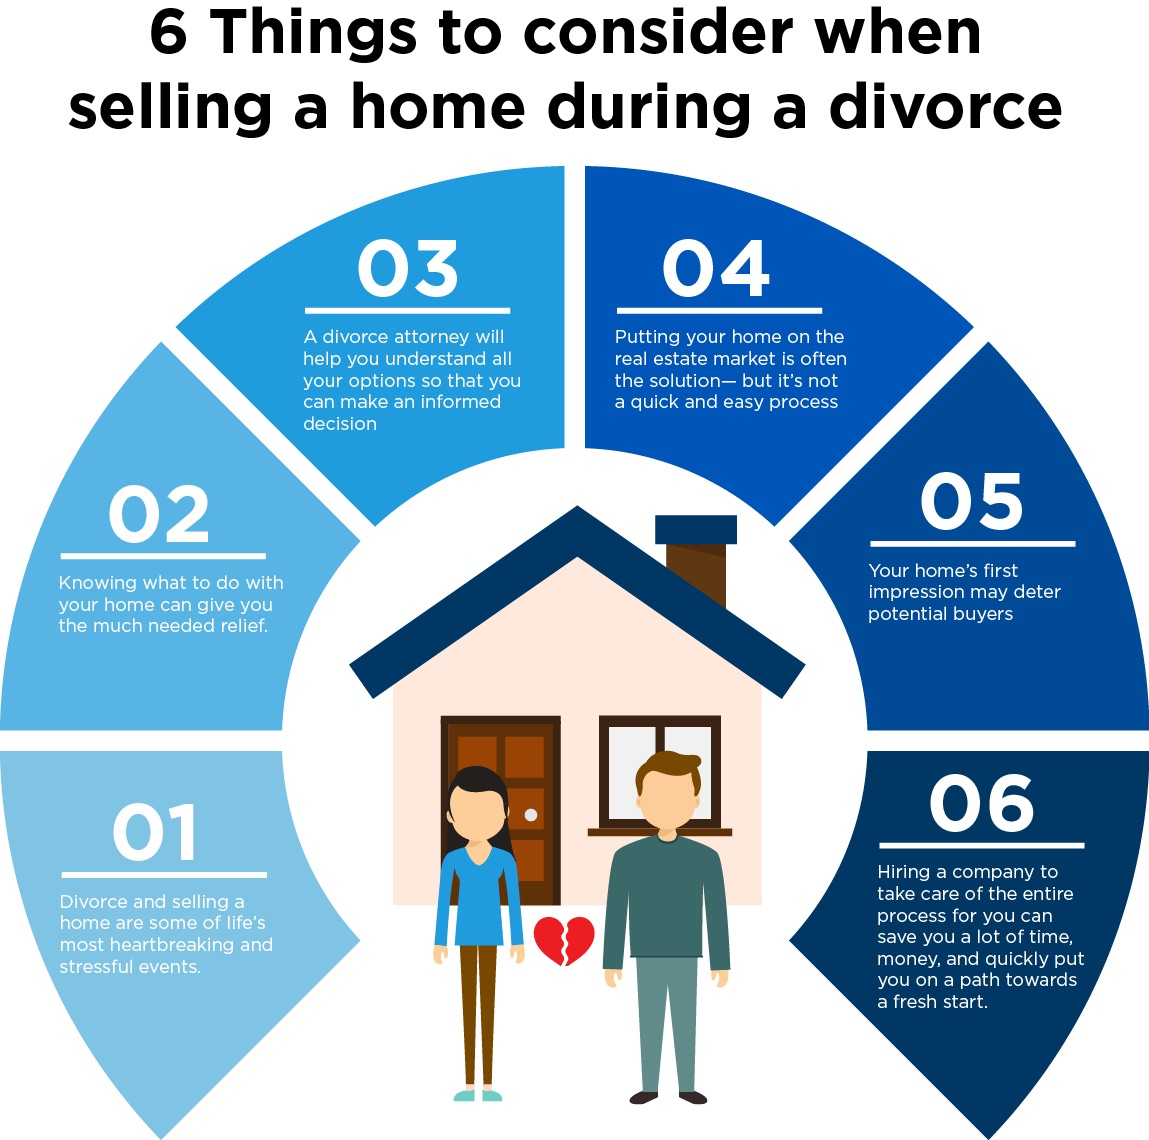 6 things to consider selling a home during a divorce in dallas texas 6 things to consider when selling a home during a divorce in dallas texas solutioingenieria Images